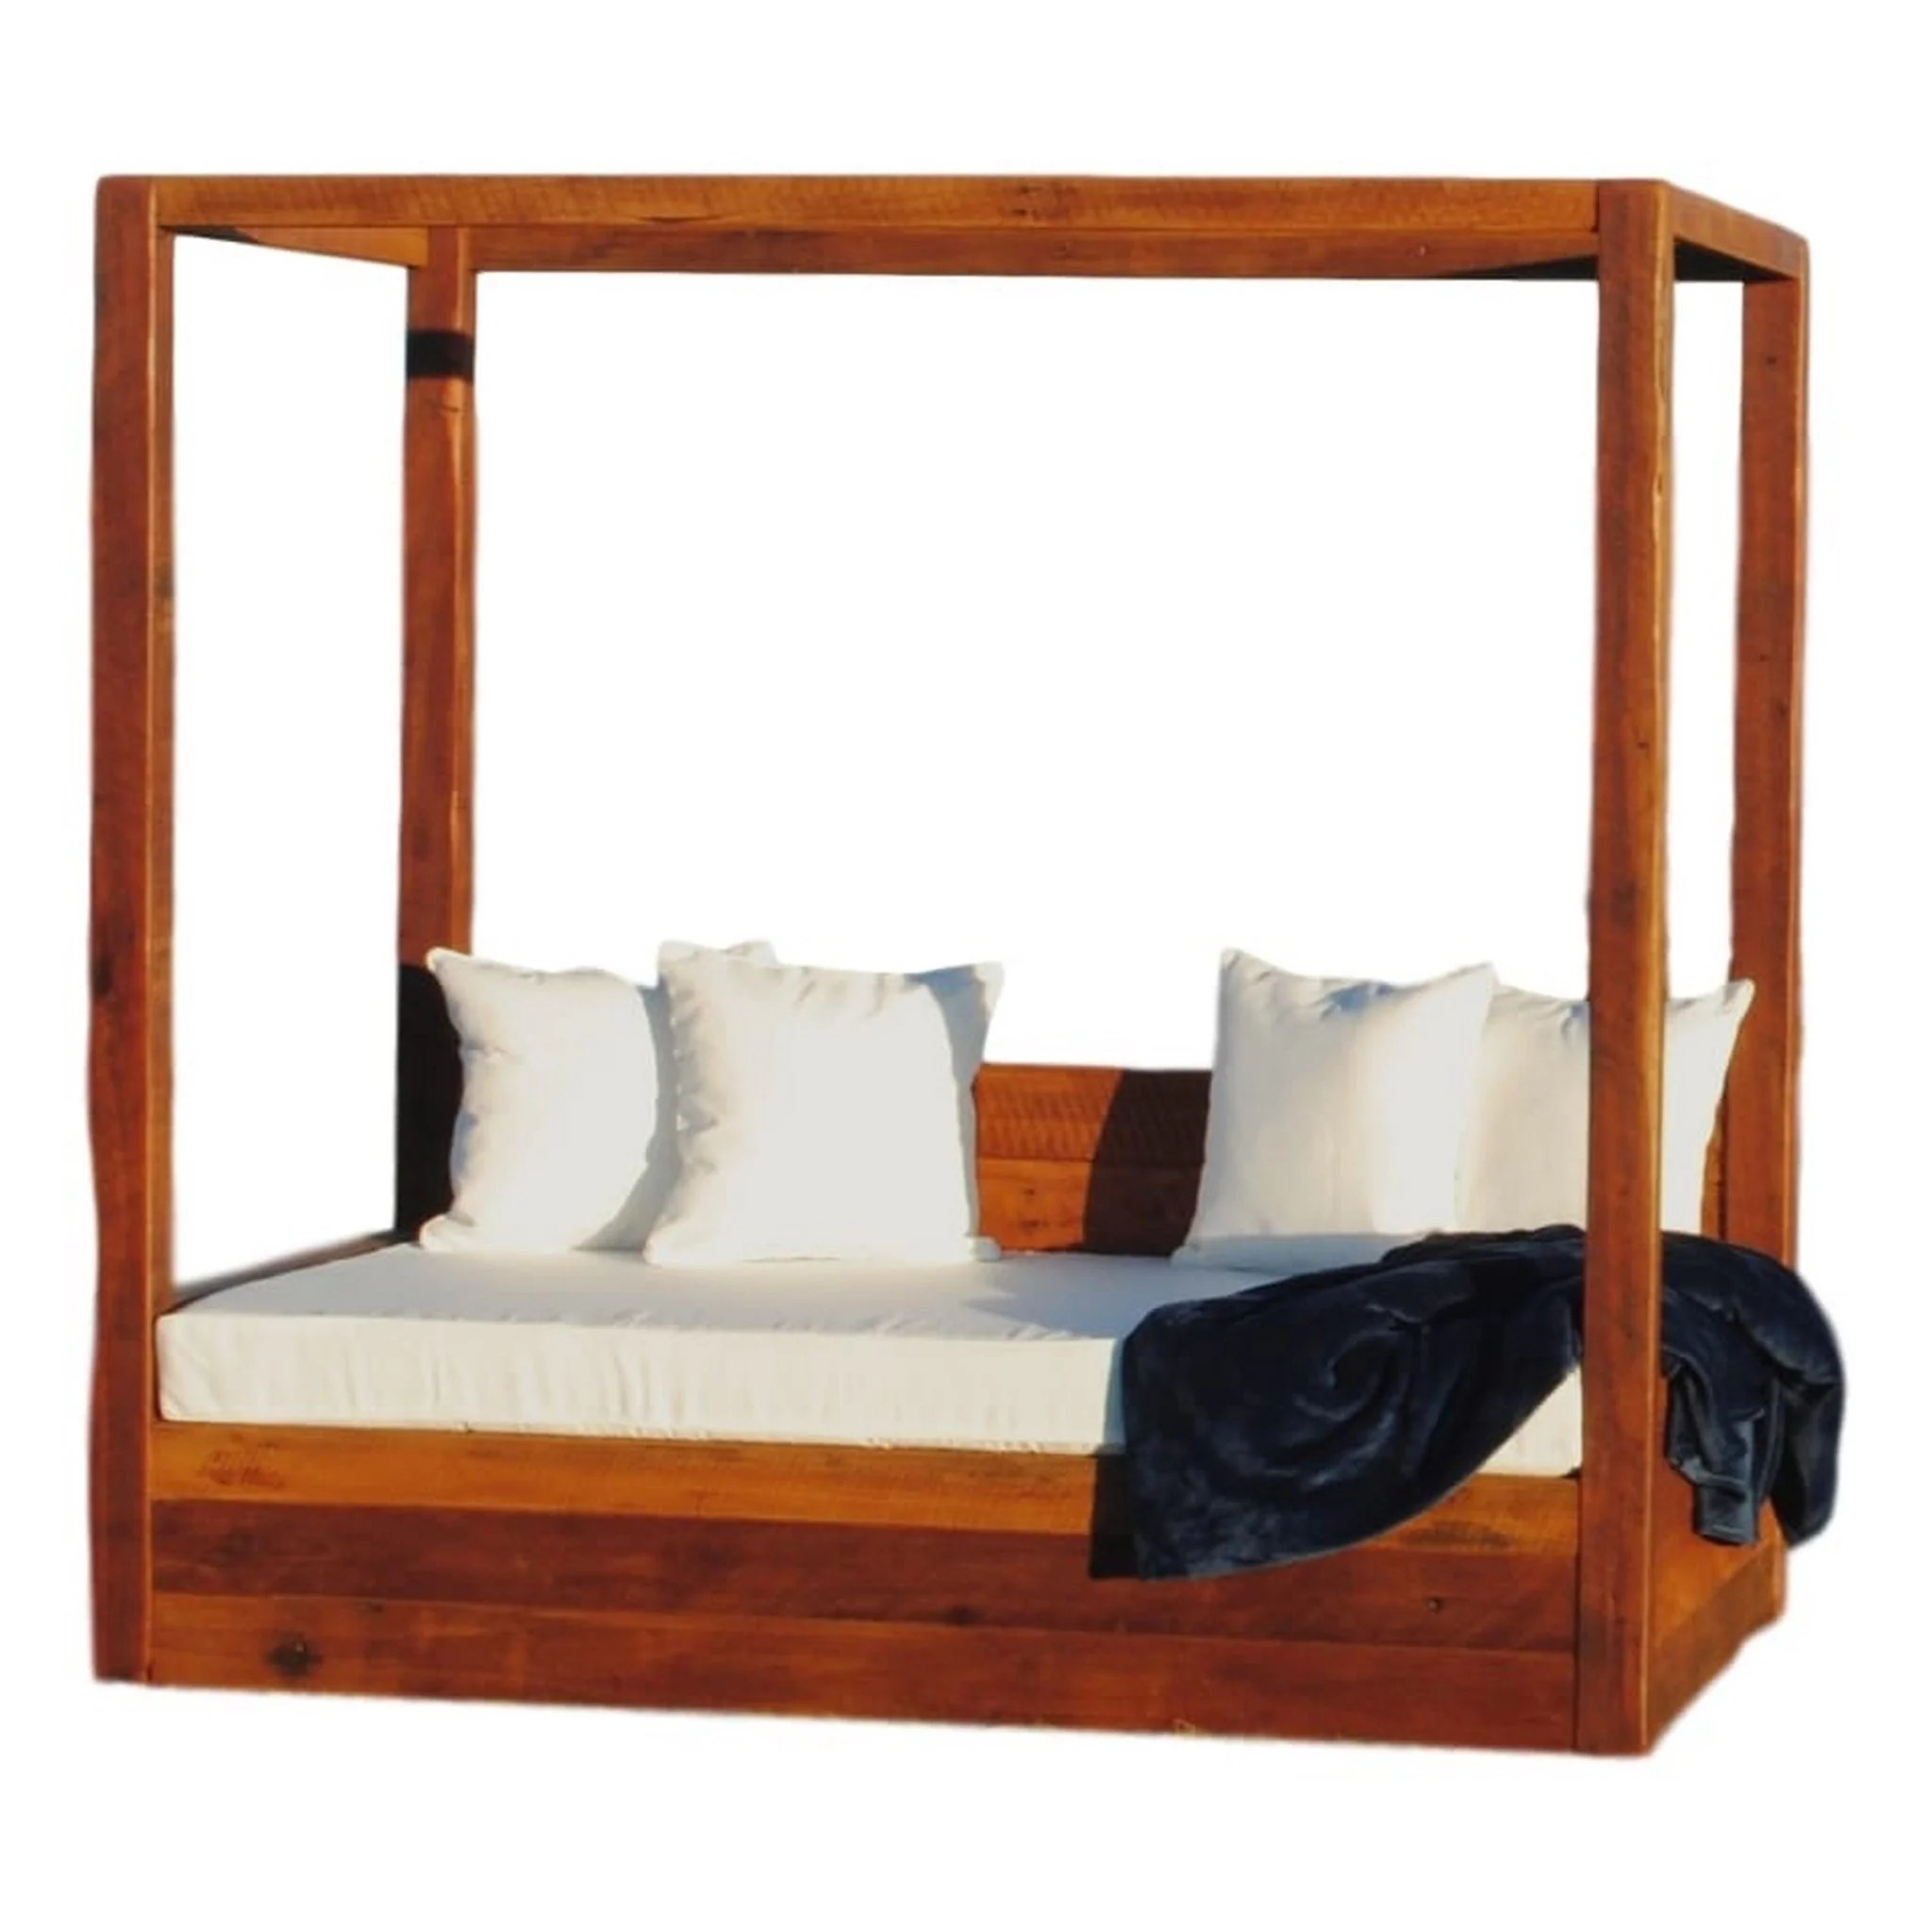 4 Poster Bed Australia Four Poster Illusive Wood Designs